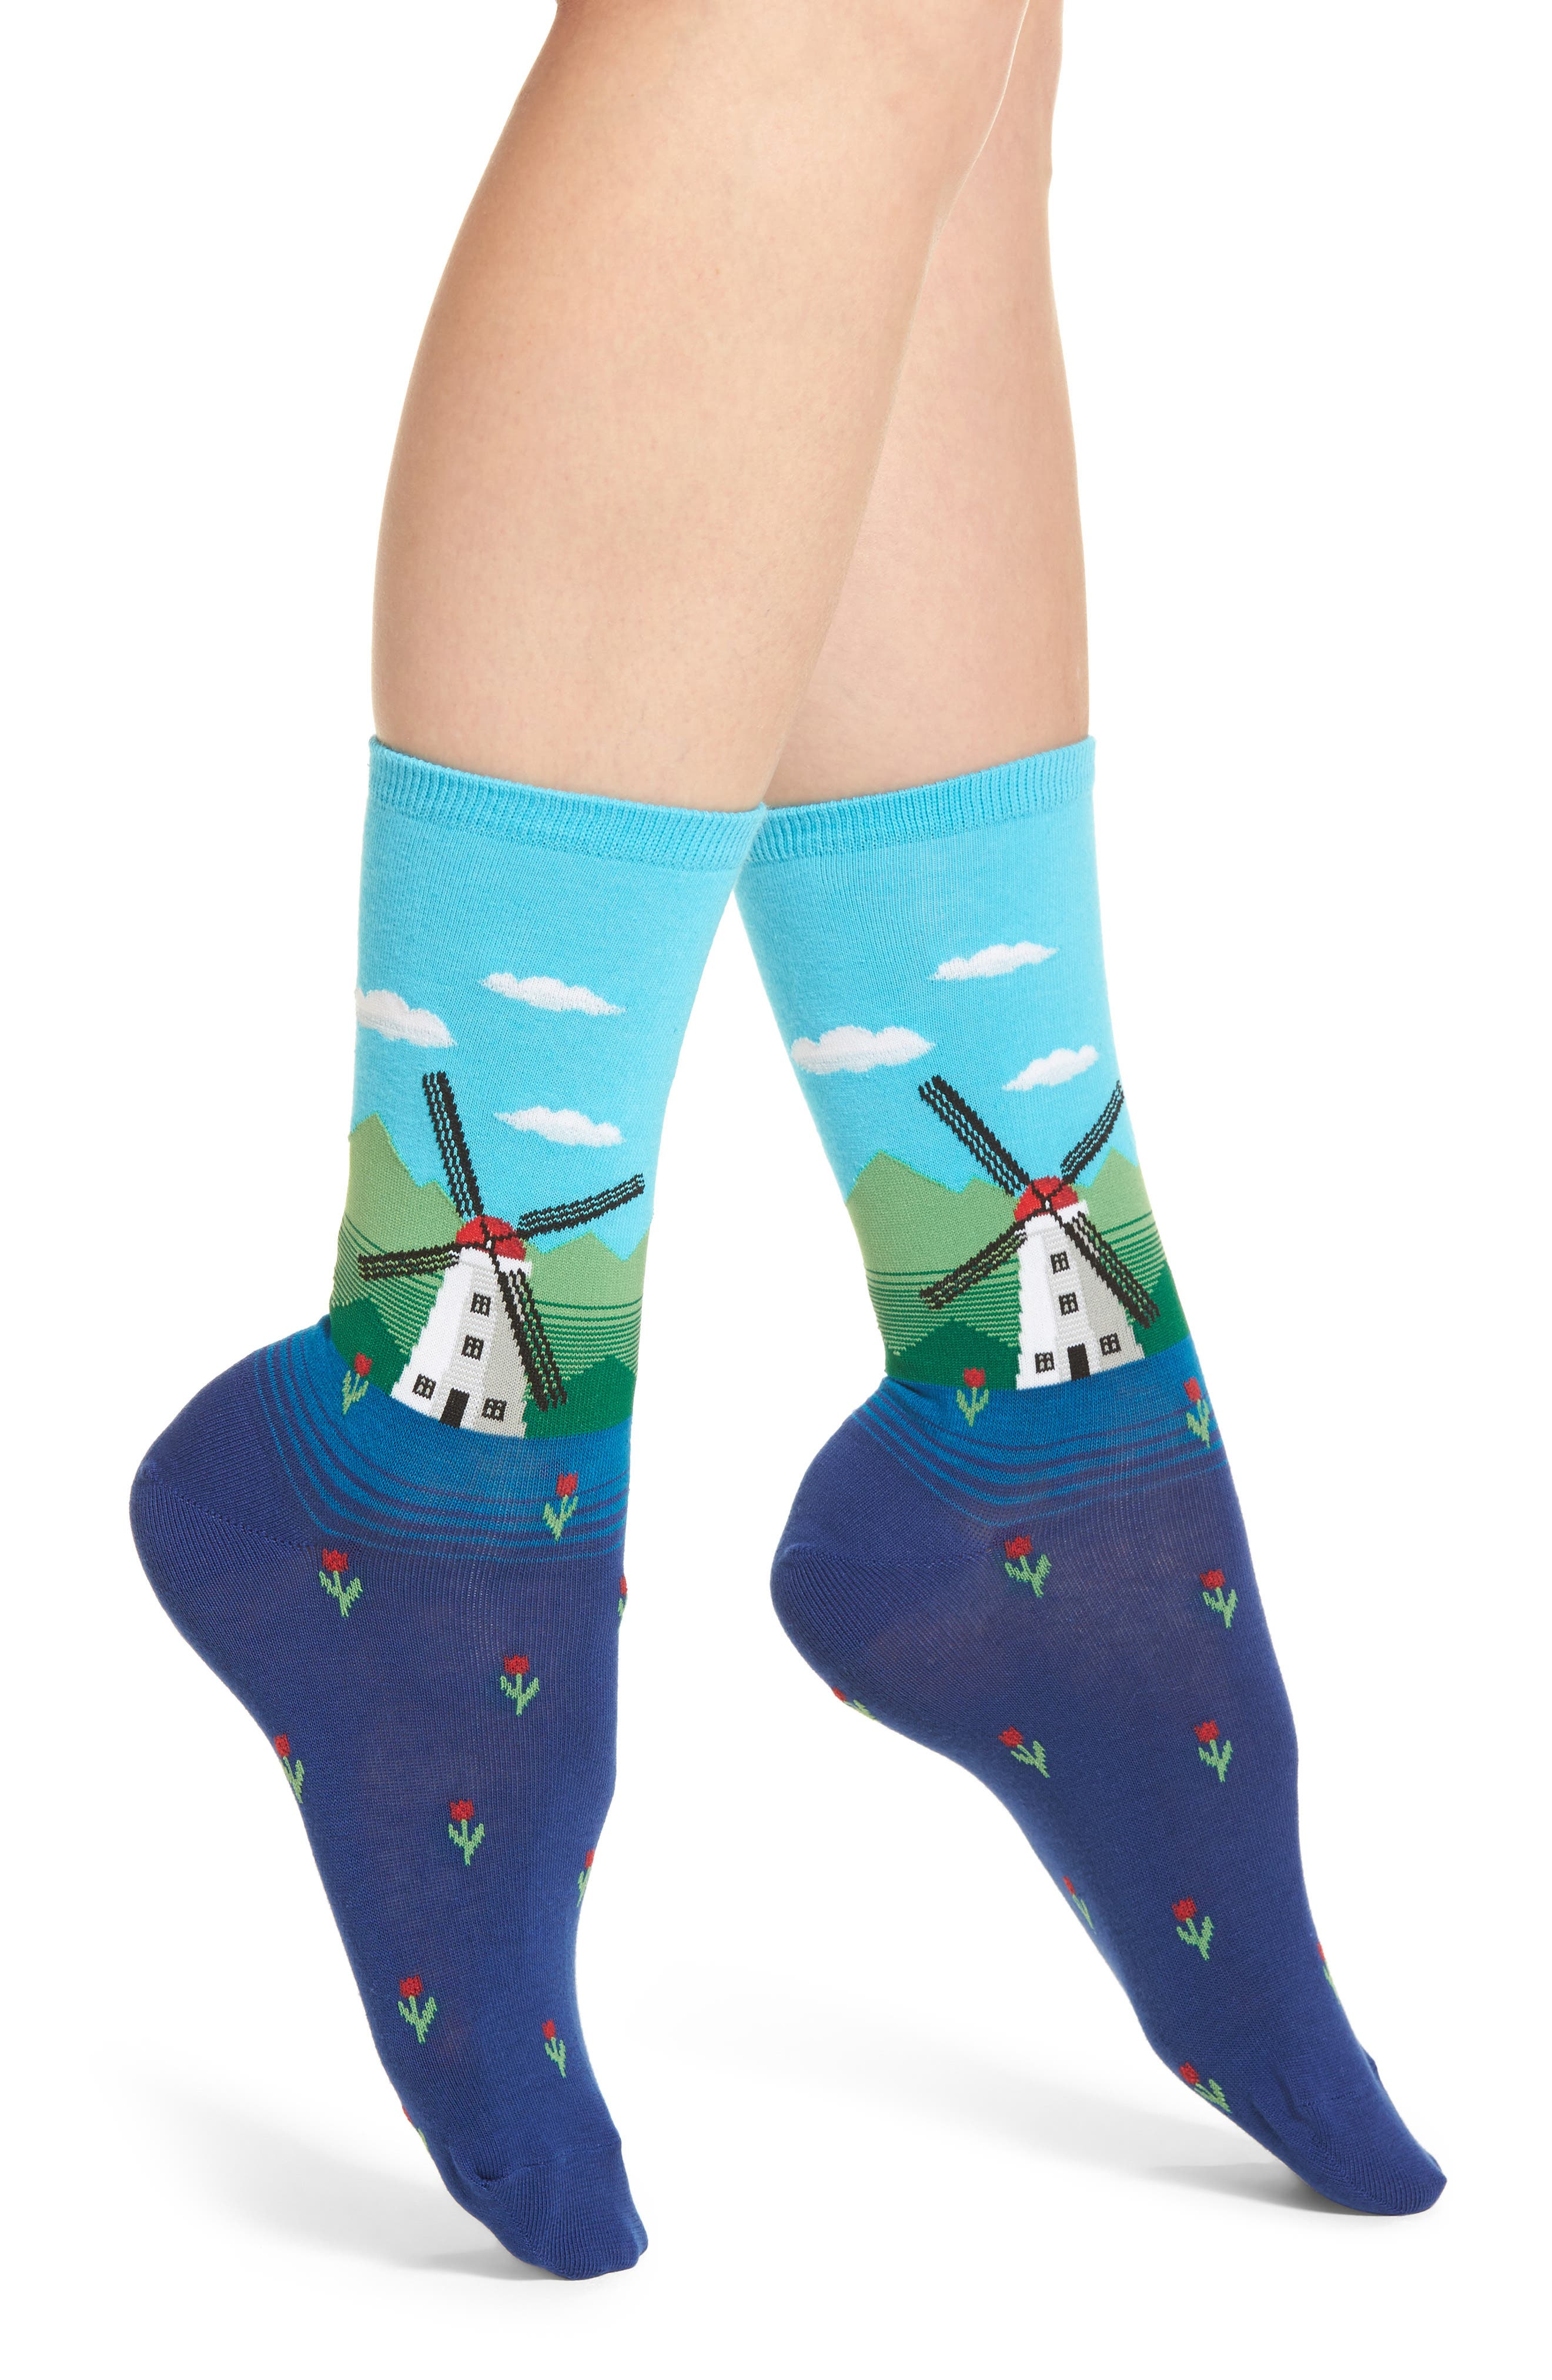 Windmill Crew Socks,                             Main thumbnail 1, color,                             Light Blue